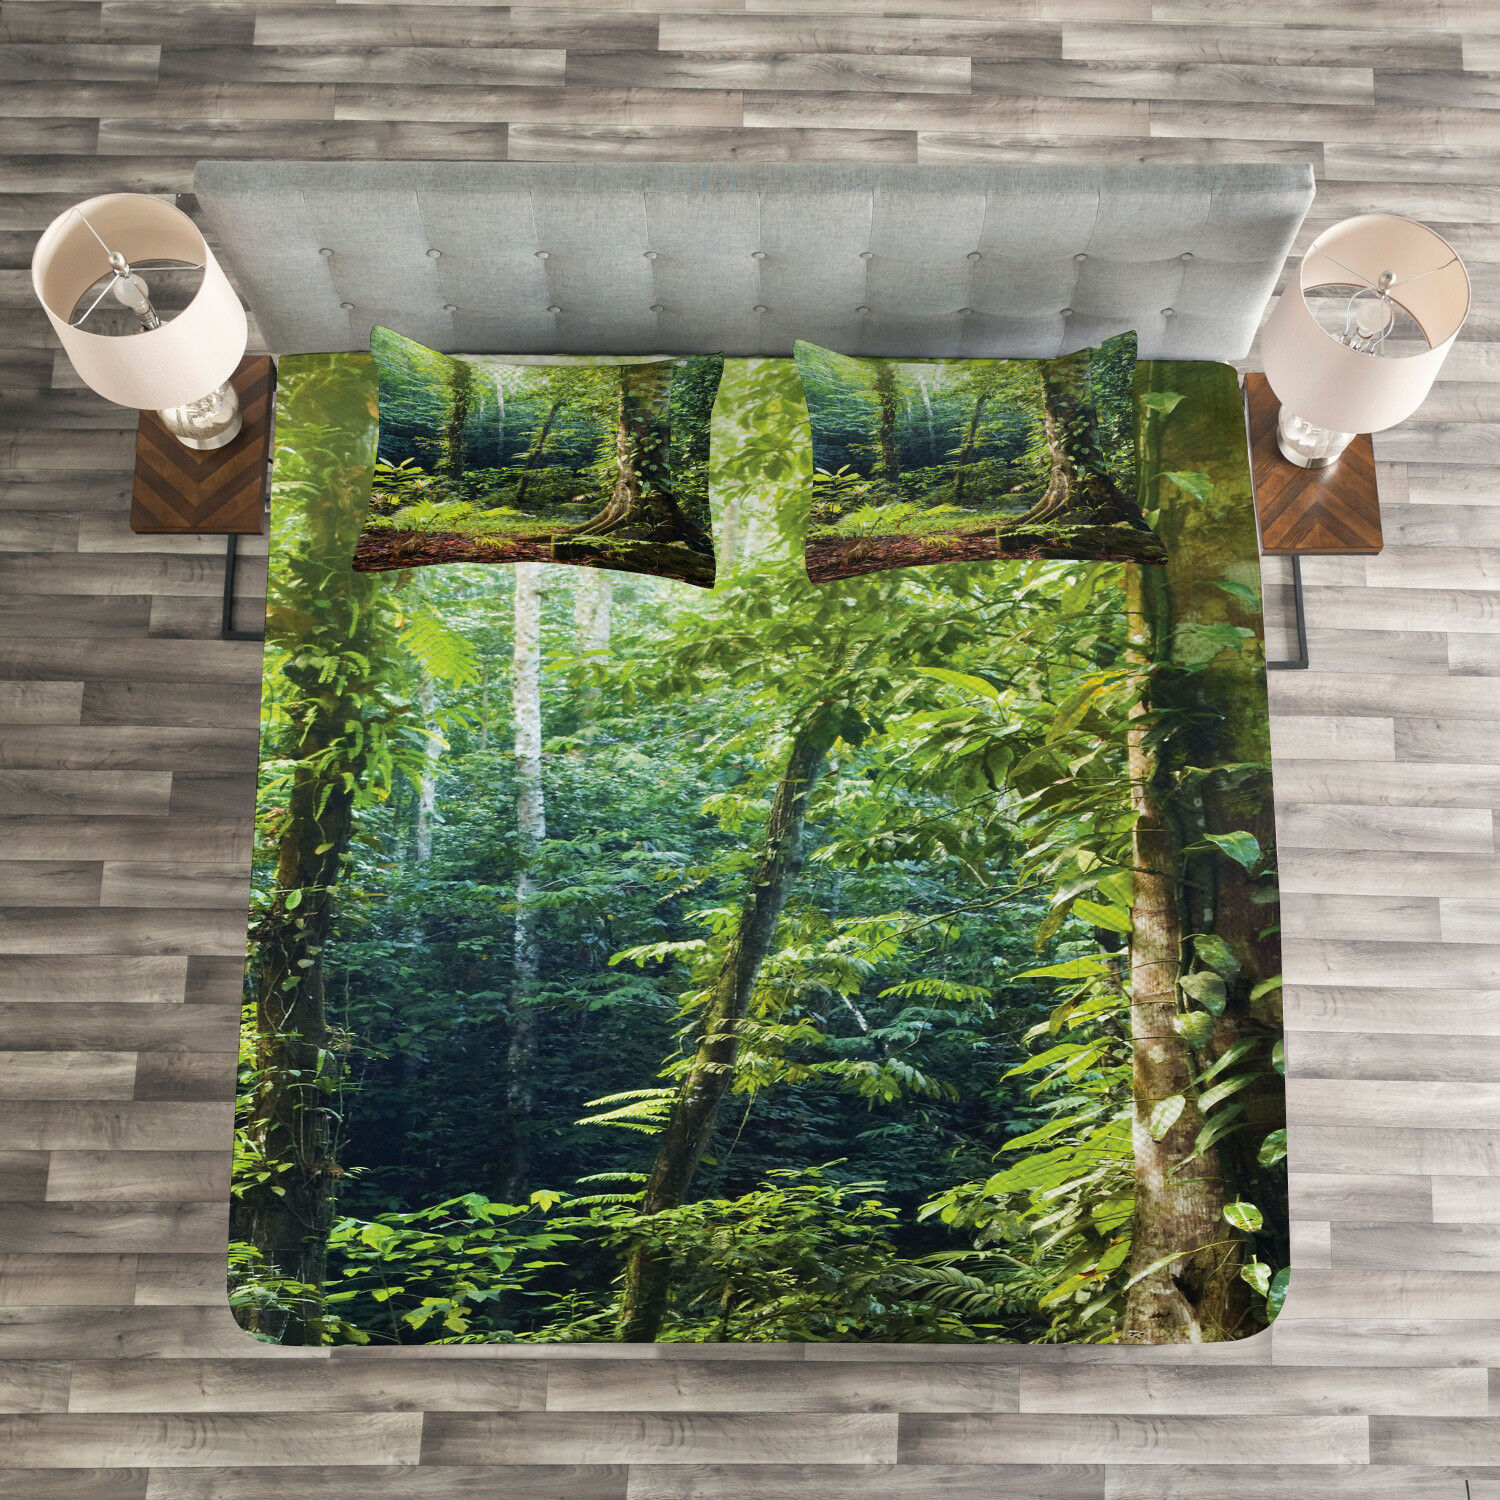 Rainforest Quilted Bedspread & Pillow Shams Set, Wild Ivy on Trees Print